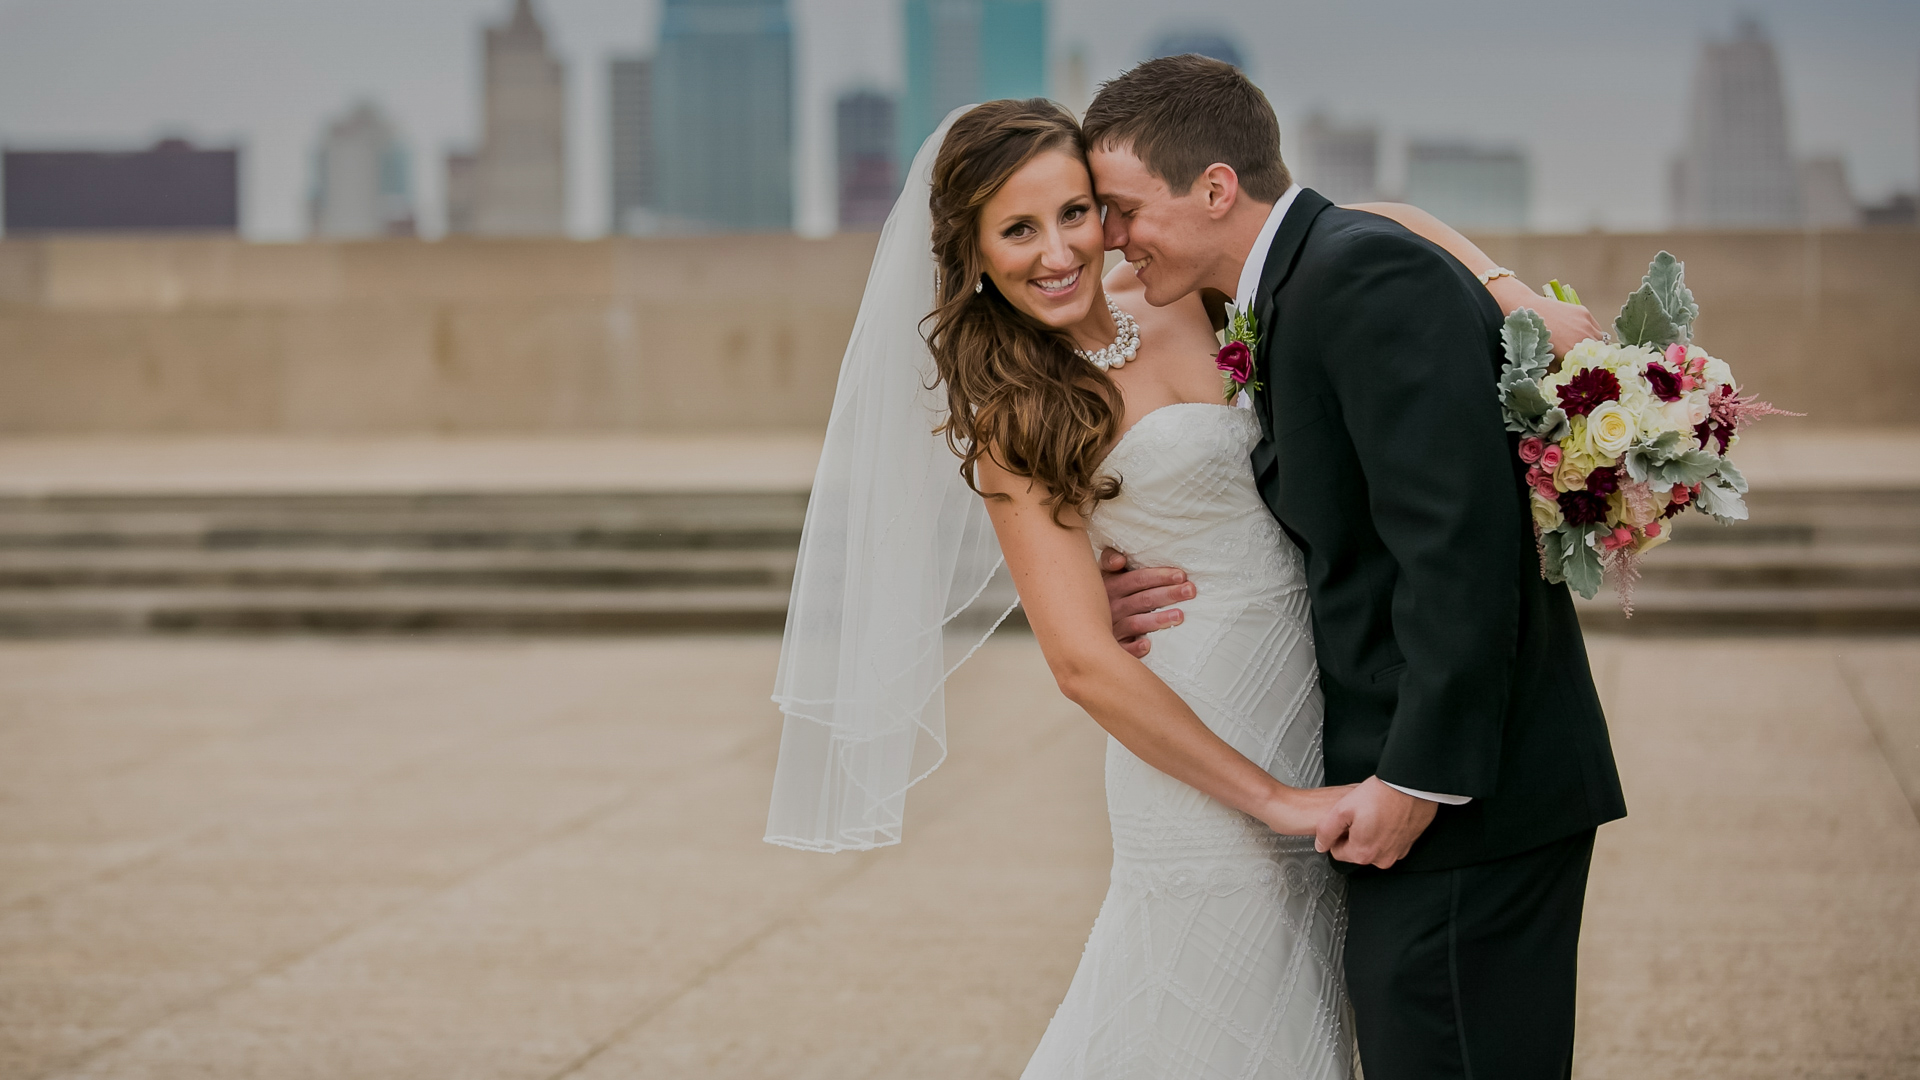 Check portfolios, pricing and availability for wedding photographers in Kansas City